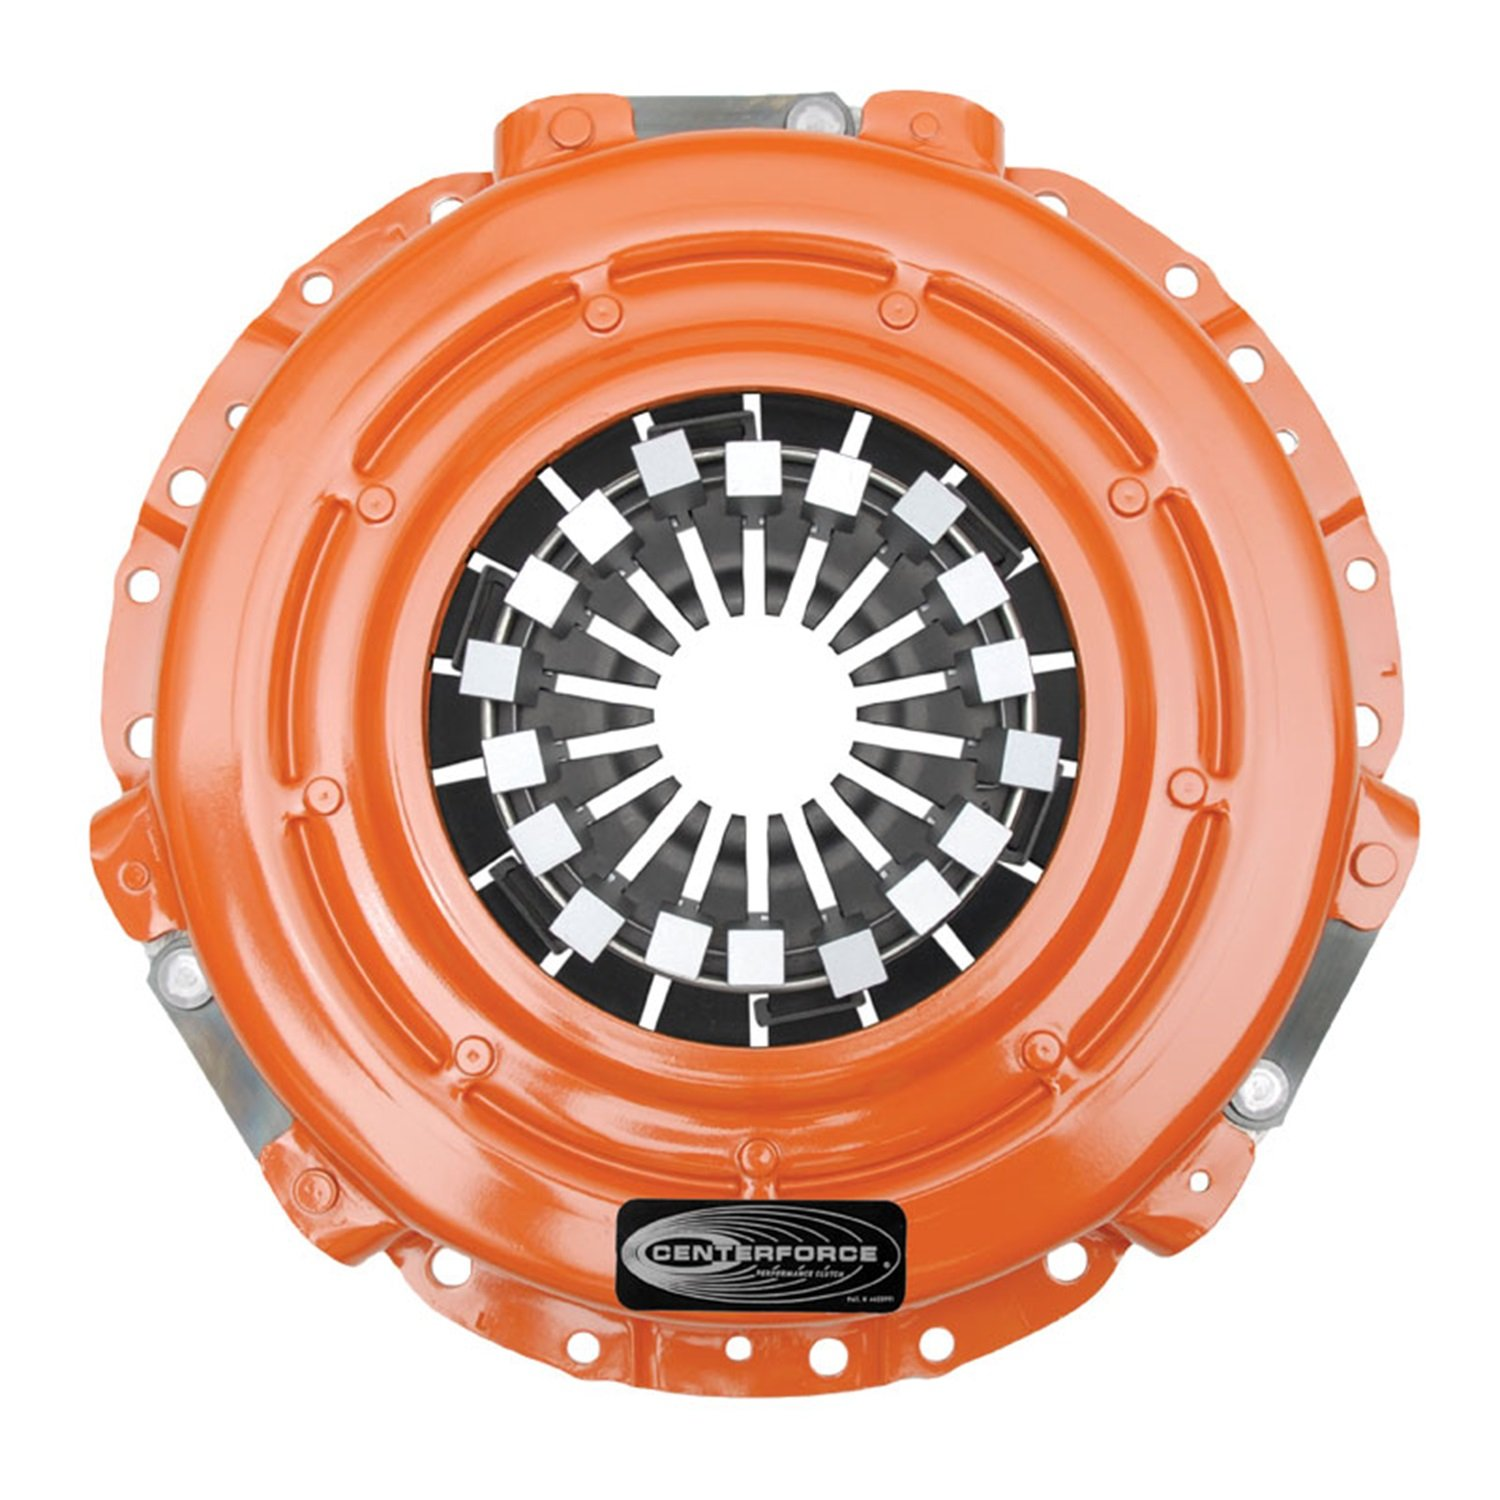 Centerforce CFT361877 Centerforce II Clutch Pressure Plate